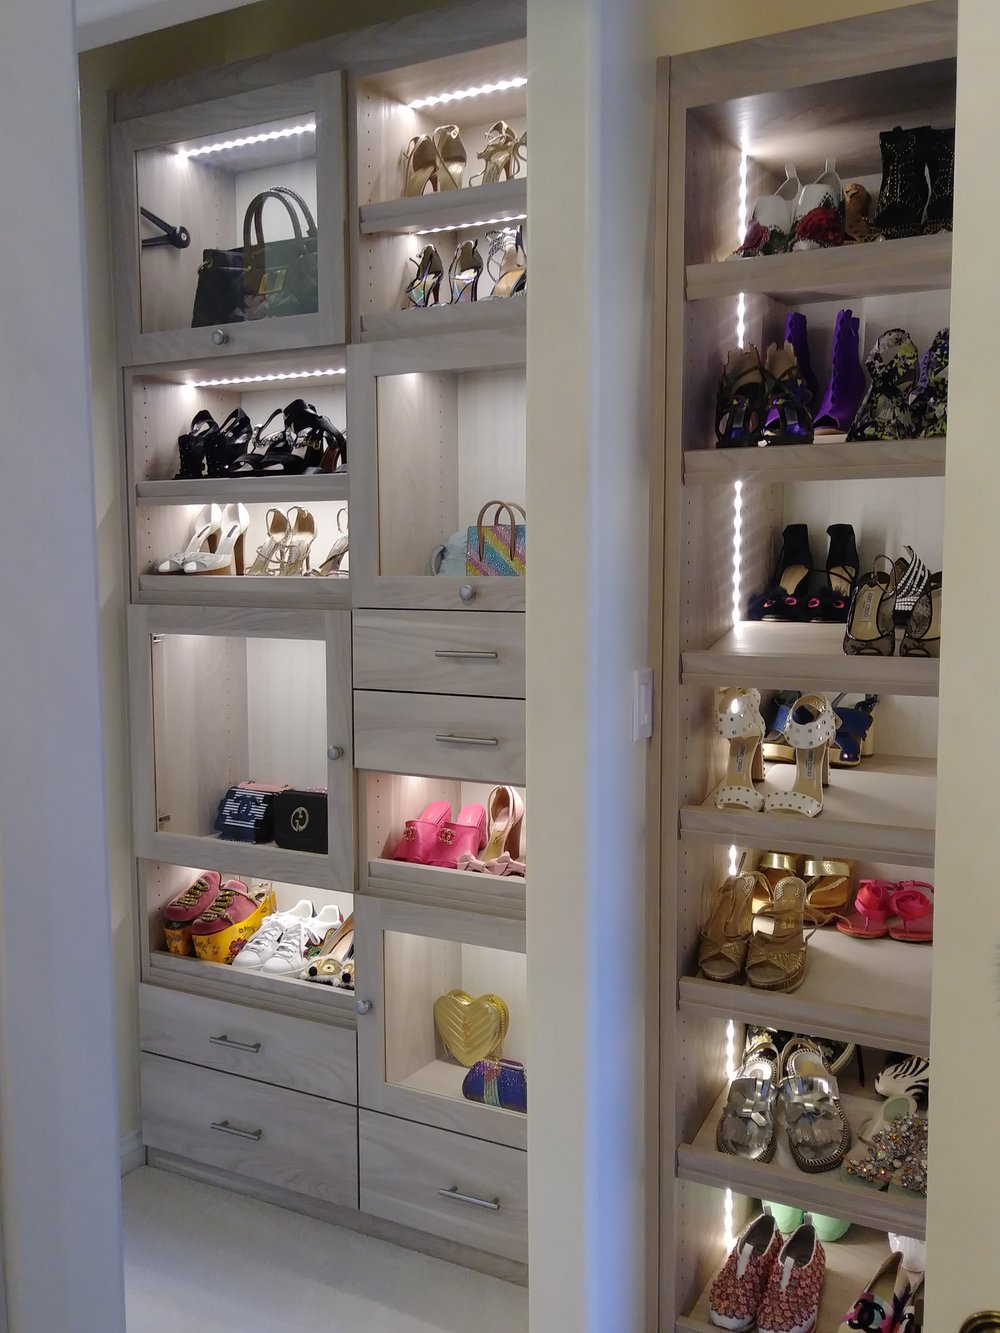 Pebble Beach Walk-In Closet